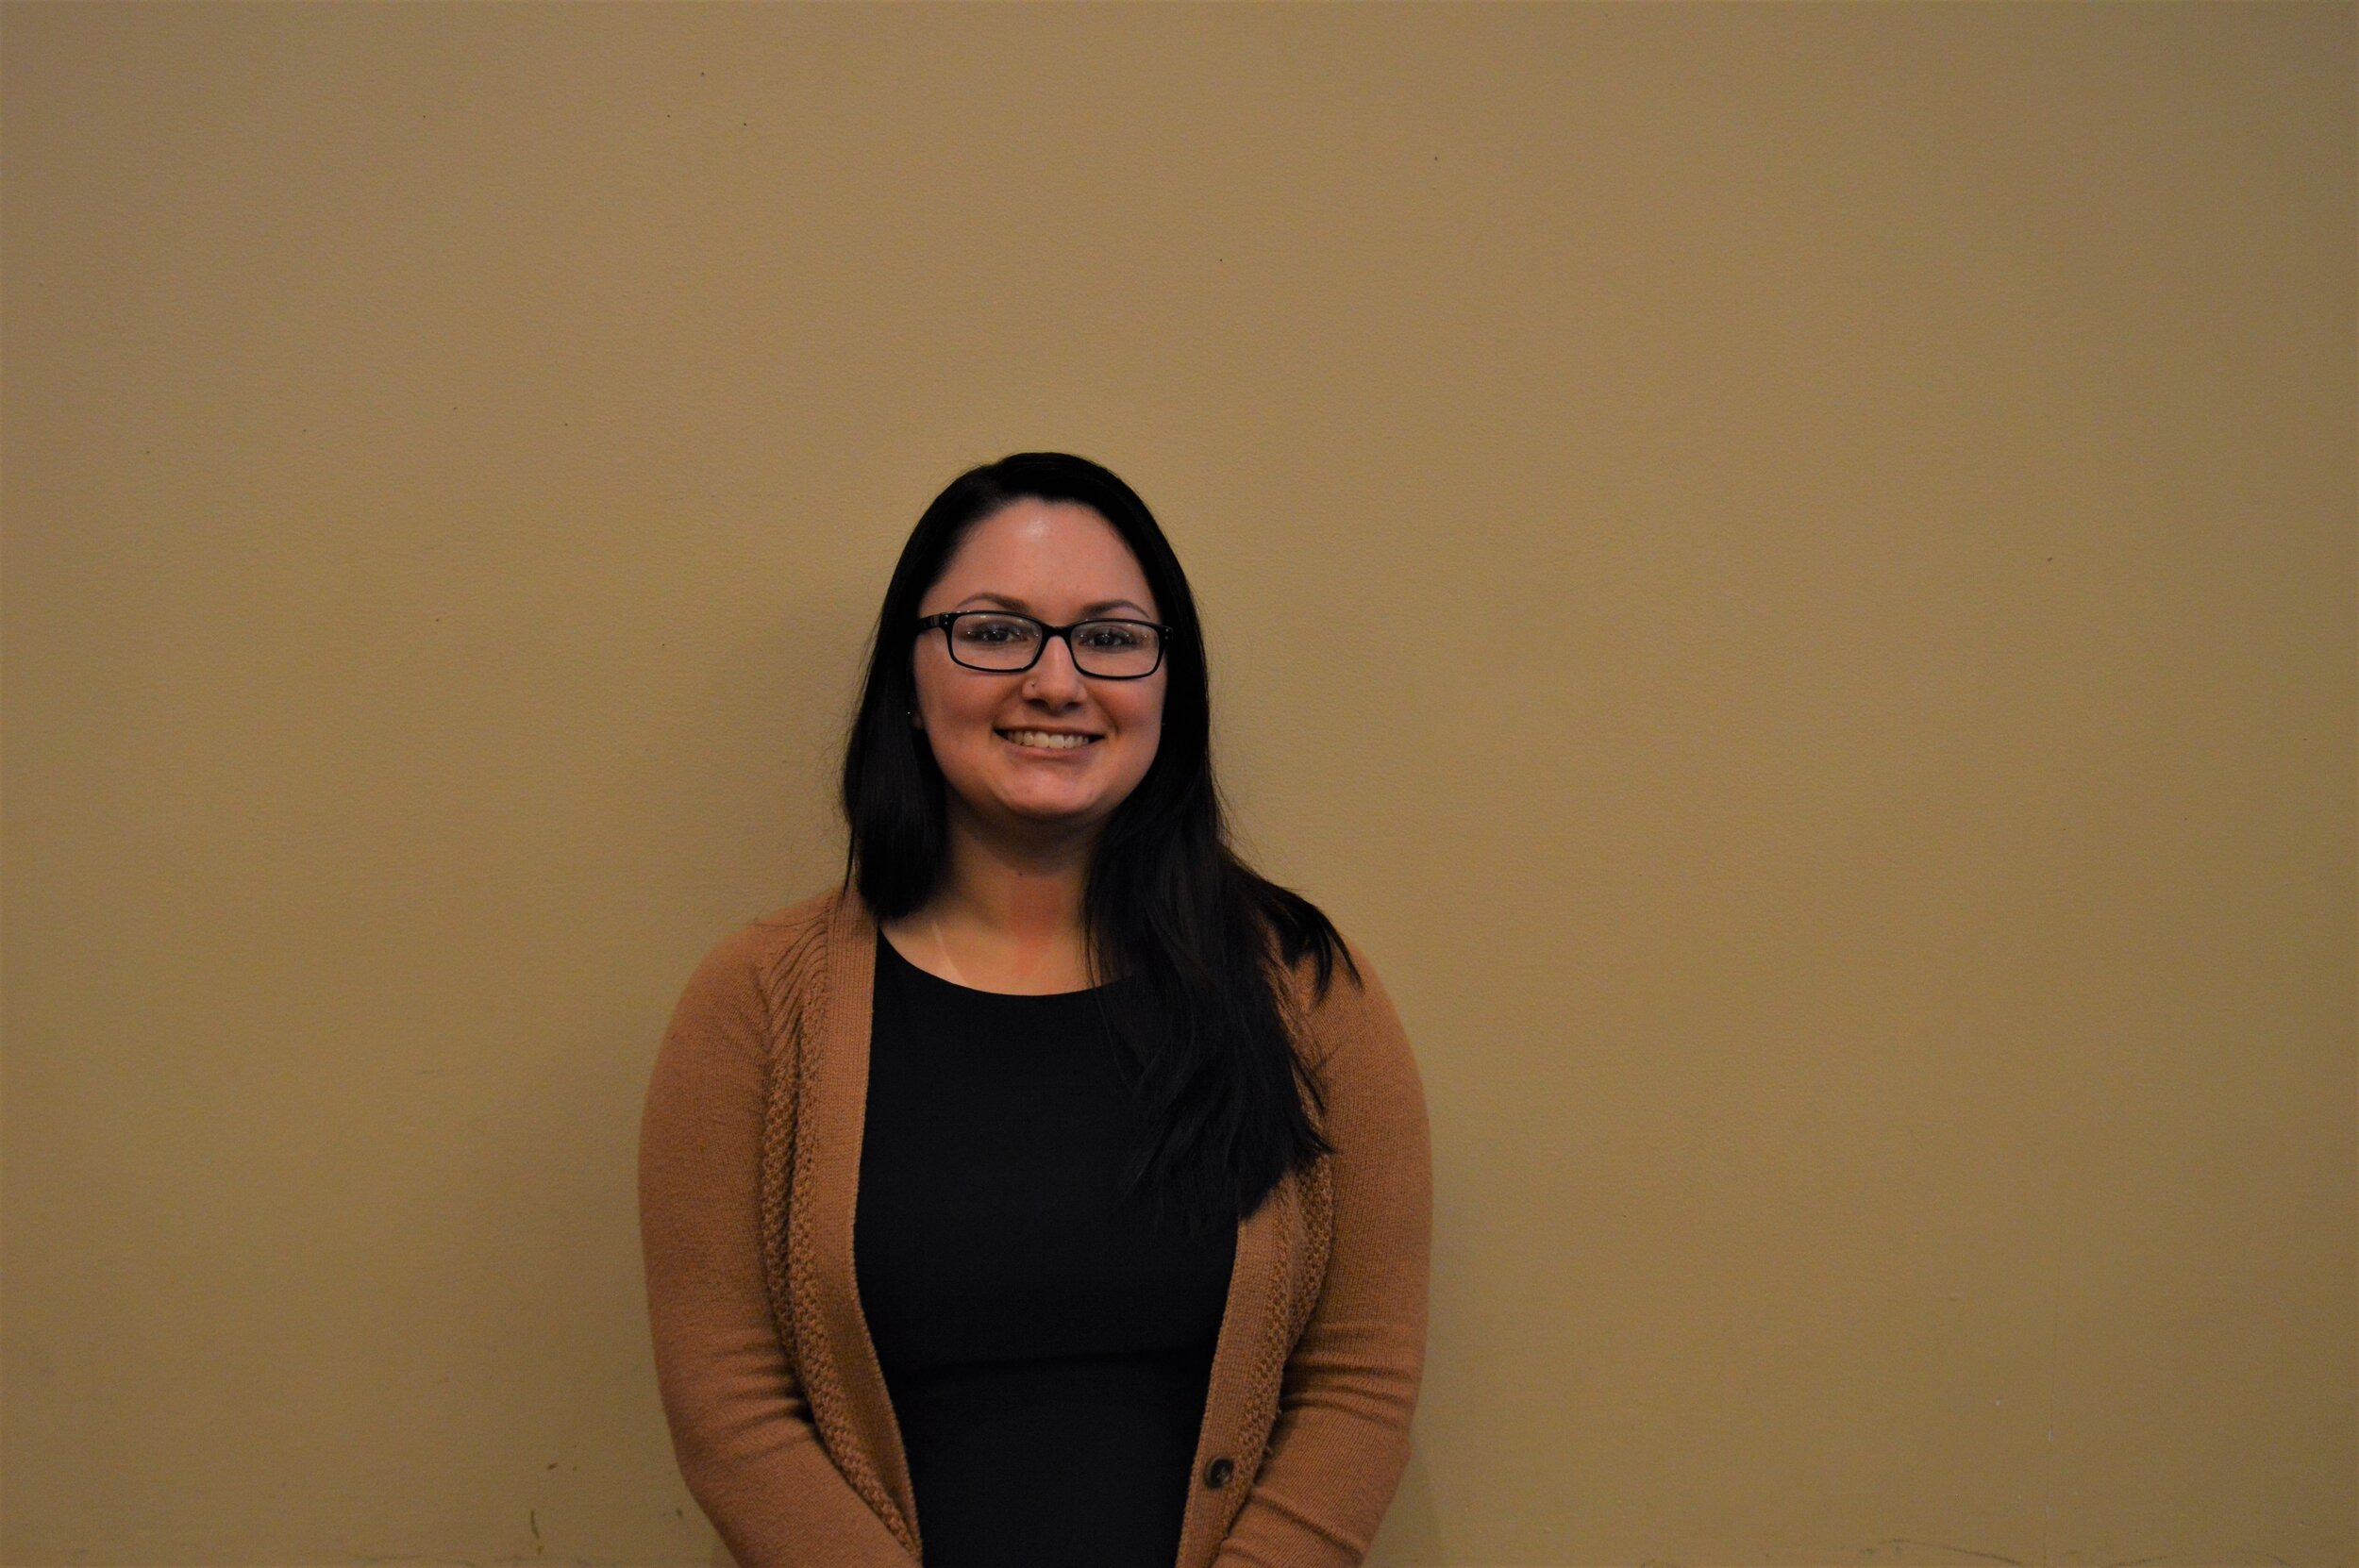 Breanne Alexis Veliz - Class and Major: Law and Social Thought 21UTSG Position: Elected SenatorEmail: bveliz@rockets.utoledo.eduBiography: I am a Law and Social Thought major with a minor in Paralegal Studies, after my college career I hope to eventually become a lawyer. My long term goal, however, is to be a judge.UTSG Committees: Internal AffairsCampus Involvement: Mock Trial, Acting and ImprovOn Campus Goals: I would like to see Rocket Wheel bike racks closer to the dorms.Favorite Color: Grey